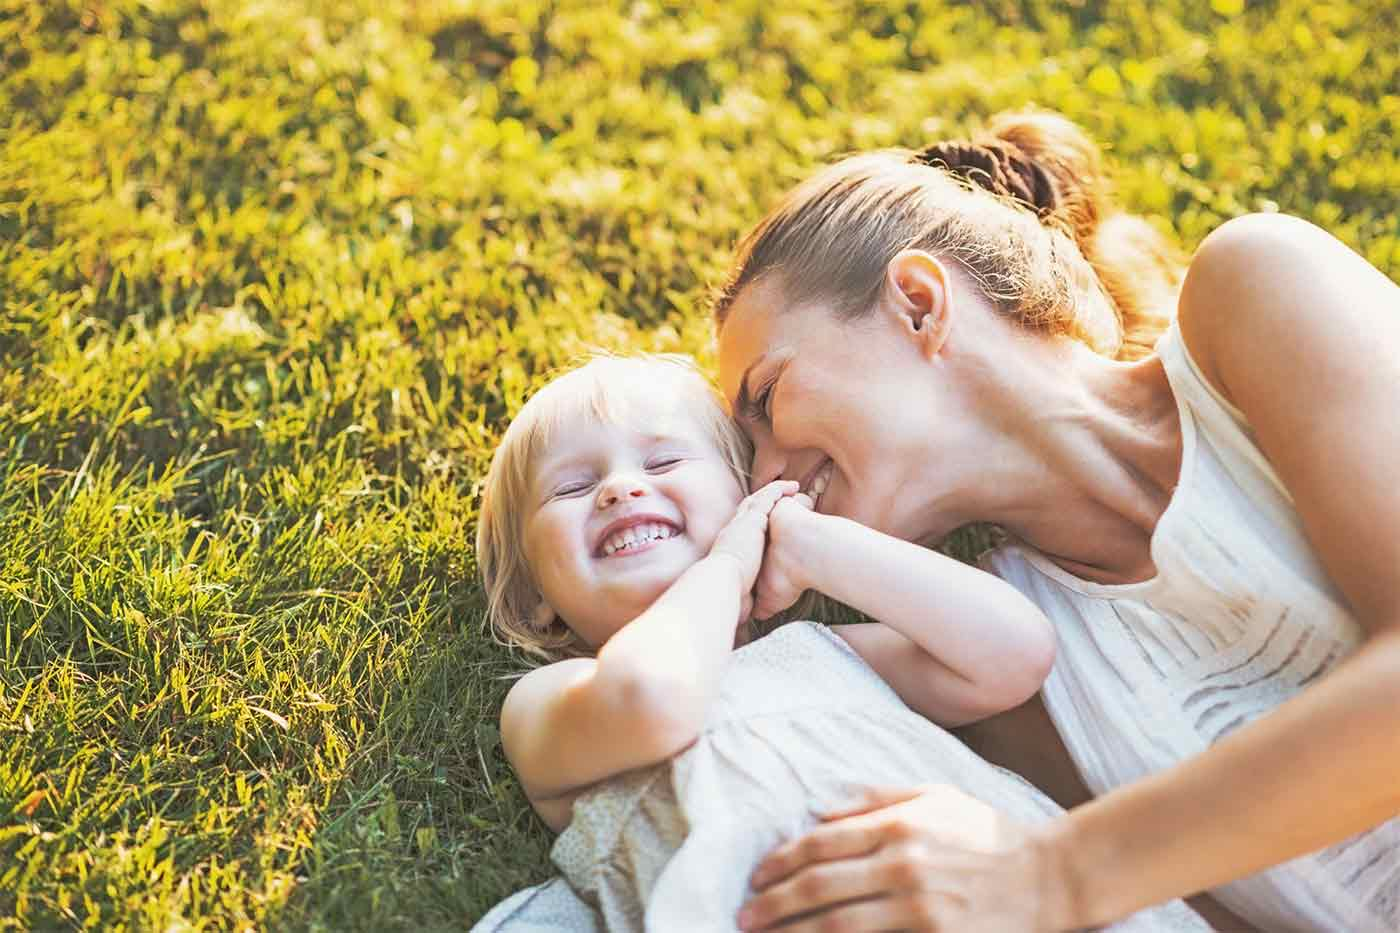 Modeling the behavior you want to see in your child